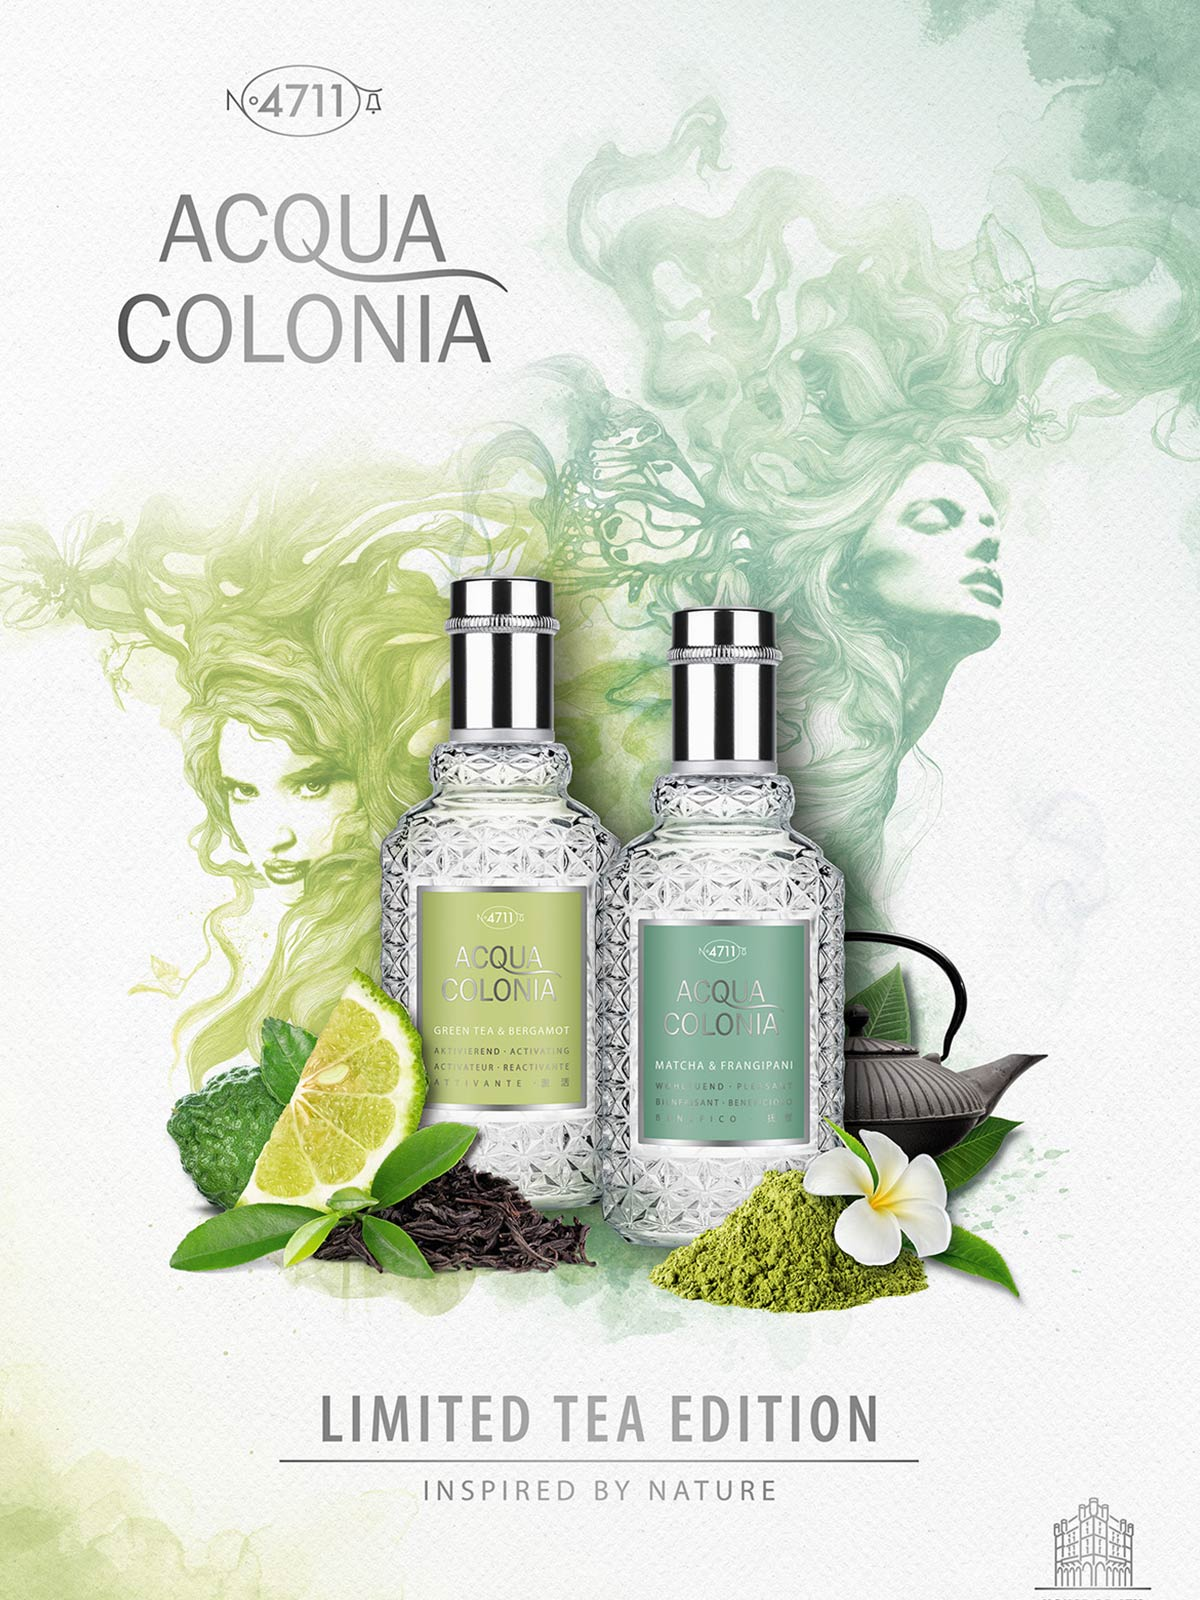 Ein Bild des Acqua Colonia_Limited Tea Edition Parfume Visual